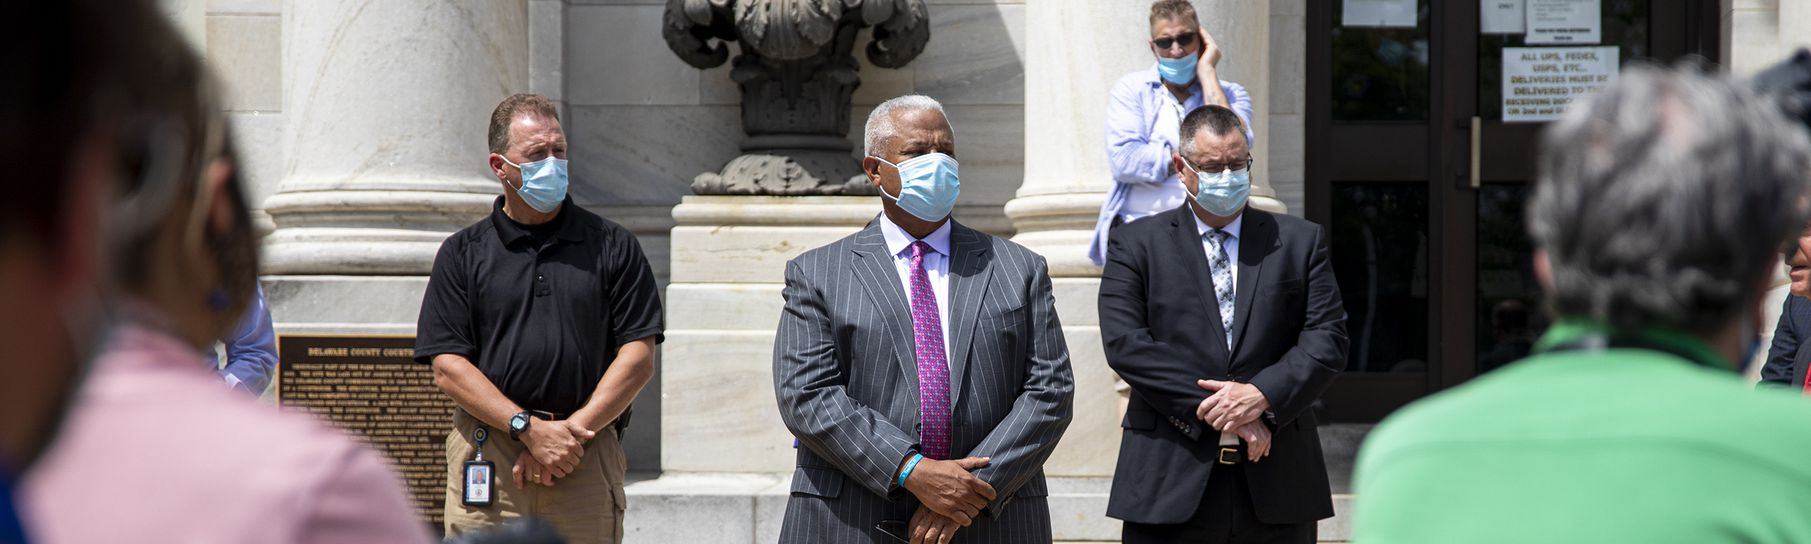 State Sen. Anthony H. Williams Tests Positive for Coronavirus, Other Senators Getting Tested